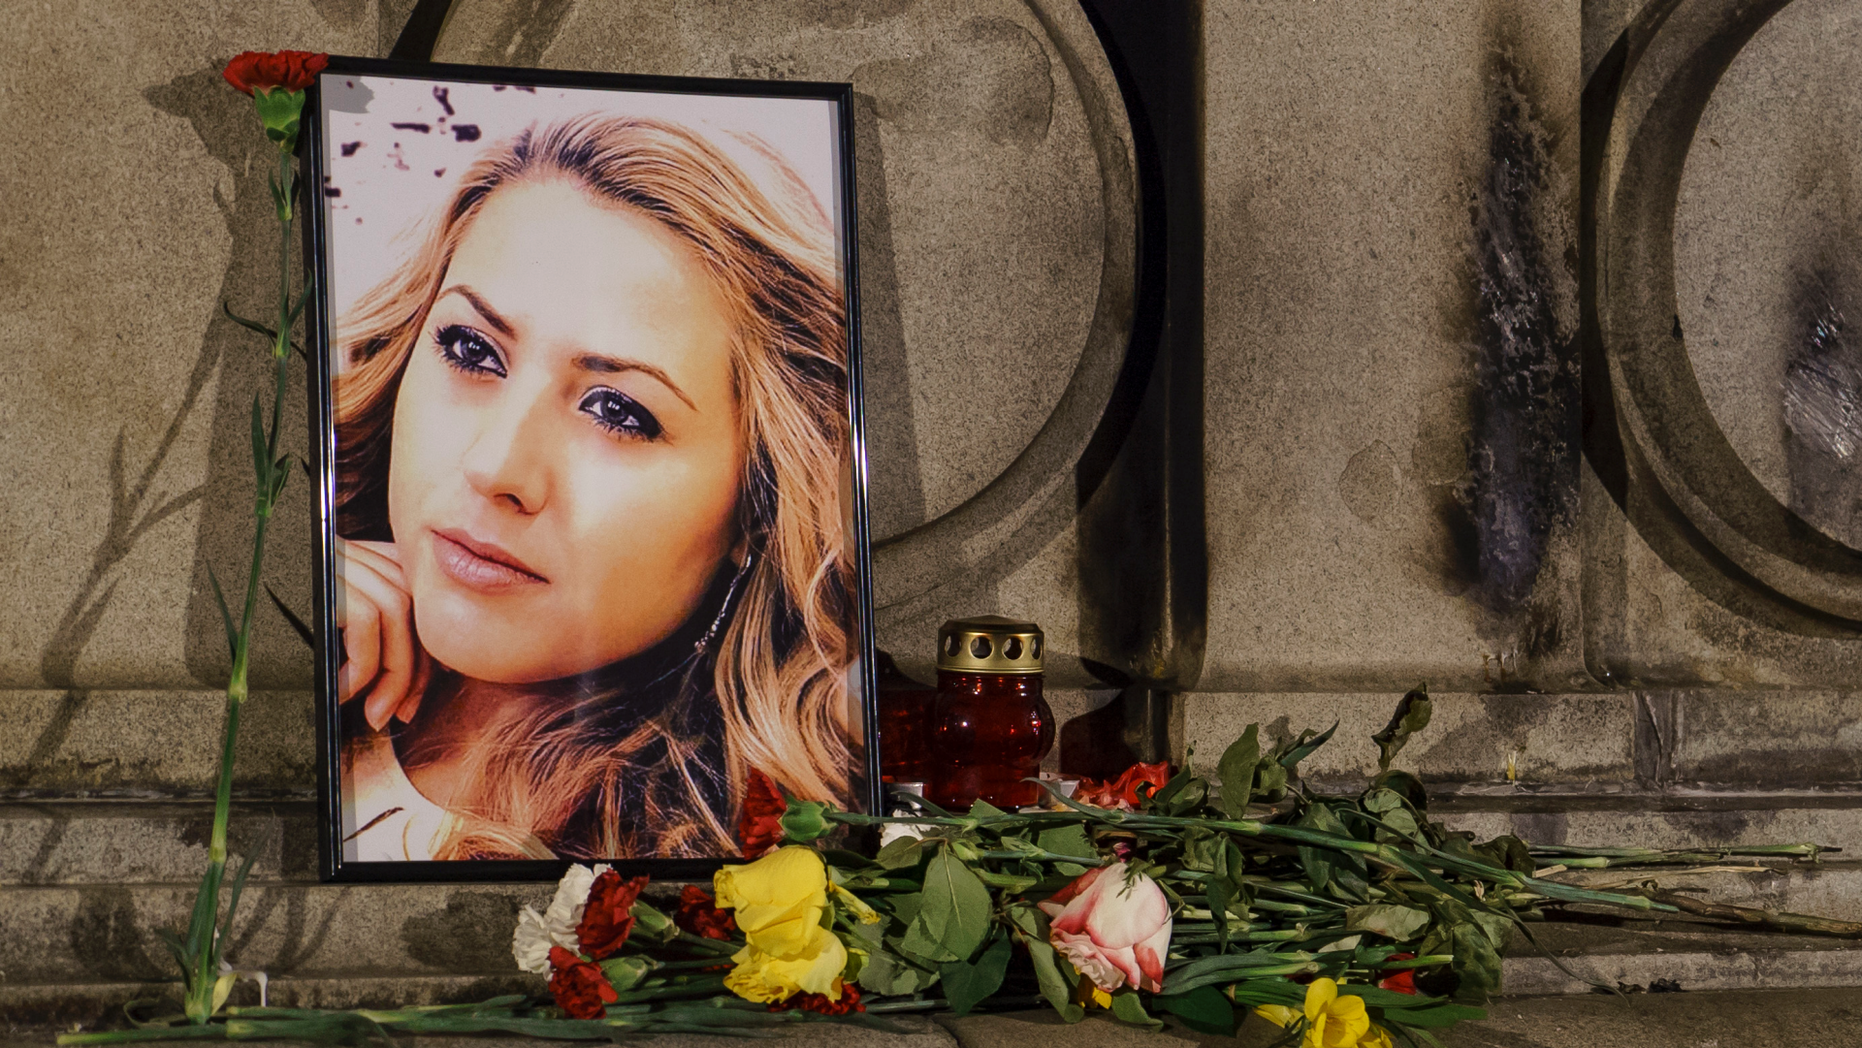 A portrait of slain television reporter Viktoria Marinova is placed on the Liberty Monument next to flowers and candles during a vigil in Ruse, Bulgaria, Tuesday, Oct. 9, 2018. Bulgarian police are investigating the rape, beating and slaying of Marinova, whose body was dumped near the Danube River after she reported on the possible misuse of European Union funds in Bulgaria. Authorities discovered the body of 30-year-old Viktoria Marinova on Saturday in the northern town of Ruse near the Romanian border. One Bulgarian media site demanded an EU investigation, fearing that Bulgarian officials were complicit in the corruption. (AP Photo/Filip Dvorski)